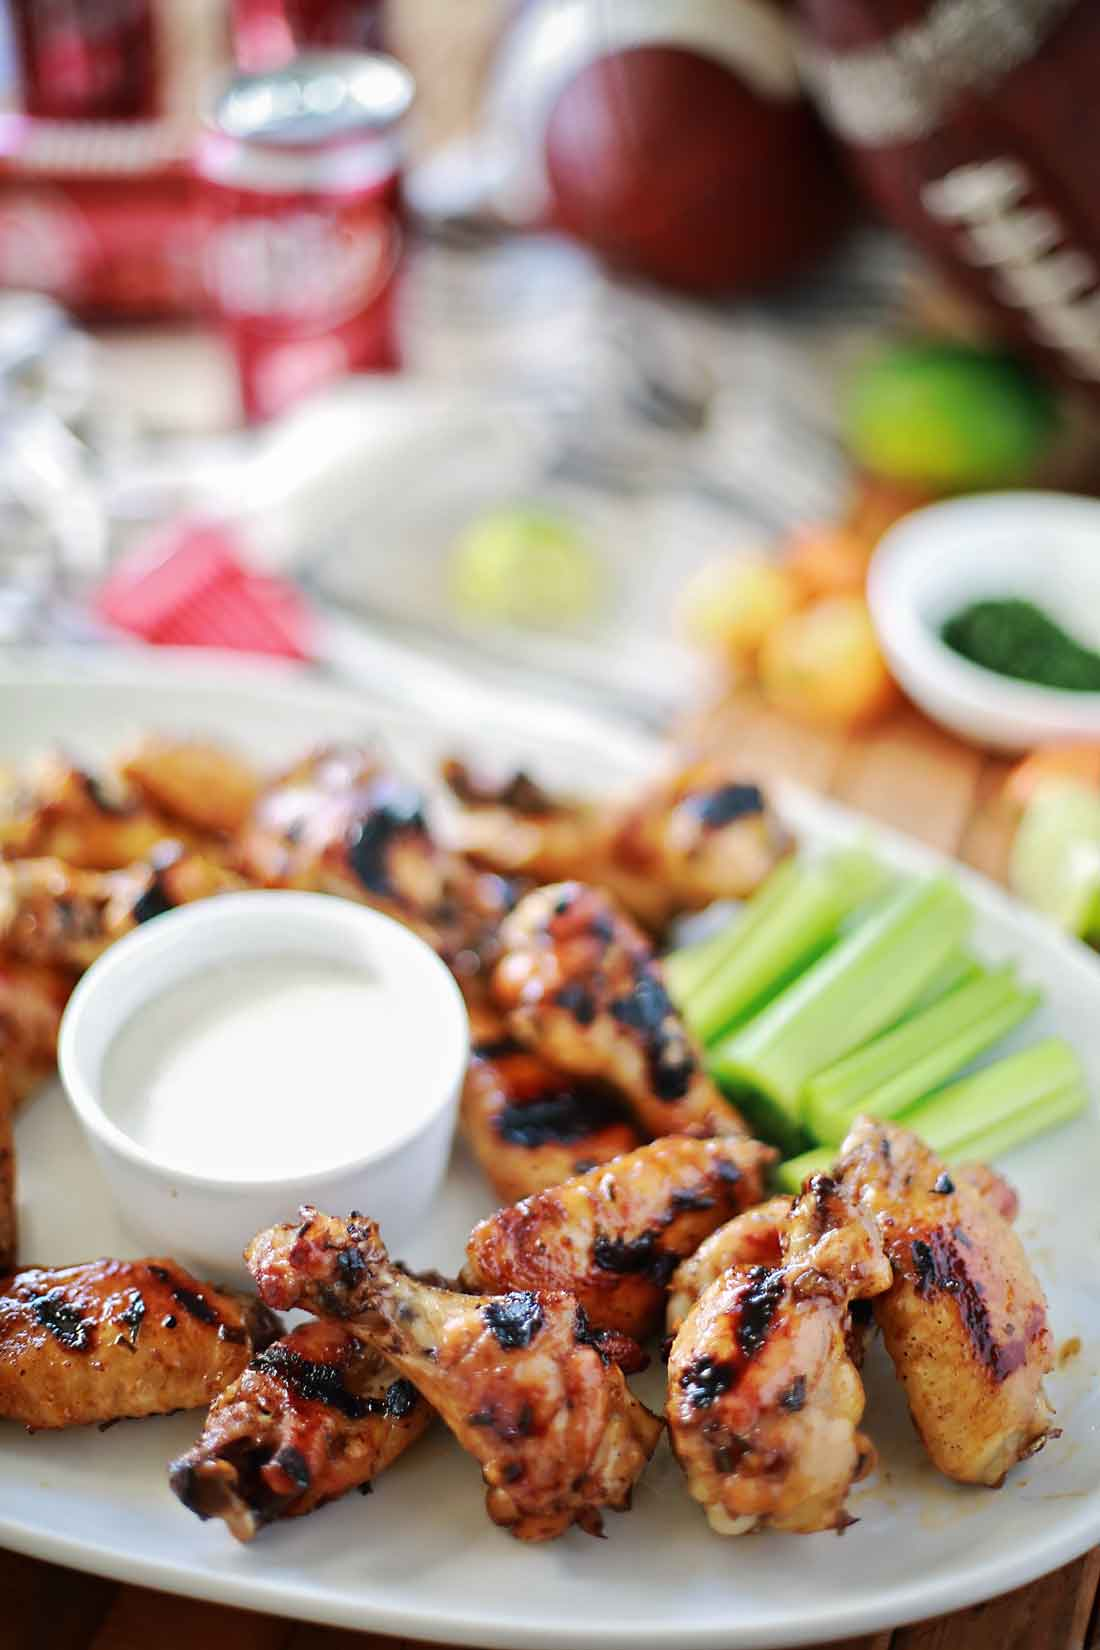 Most AMAZING wings ever! Dr Pepper Habanero glazed chicken wings by Flirting with Flavor